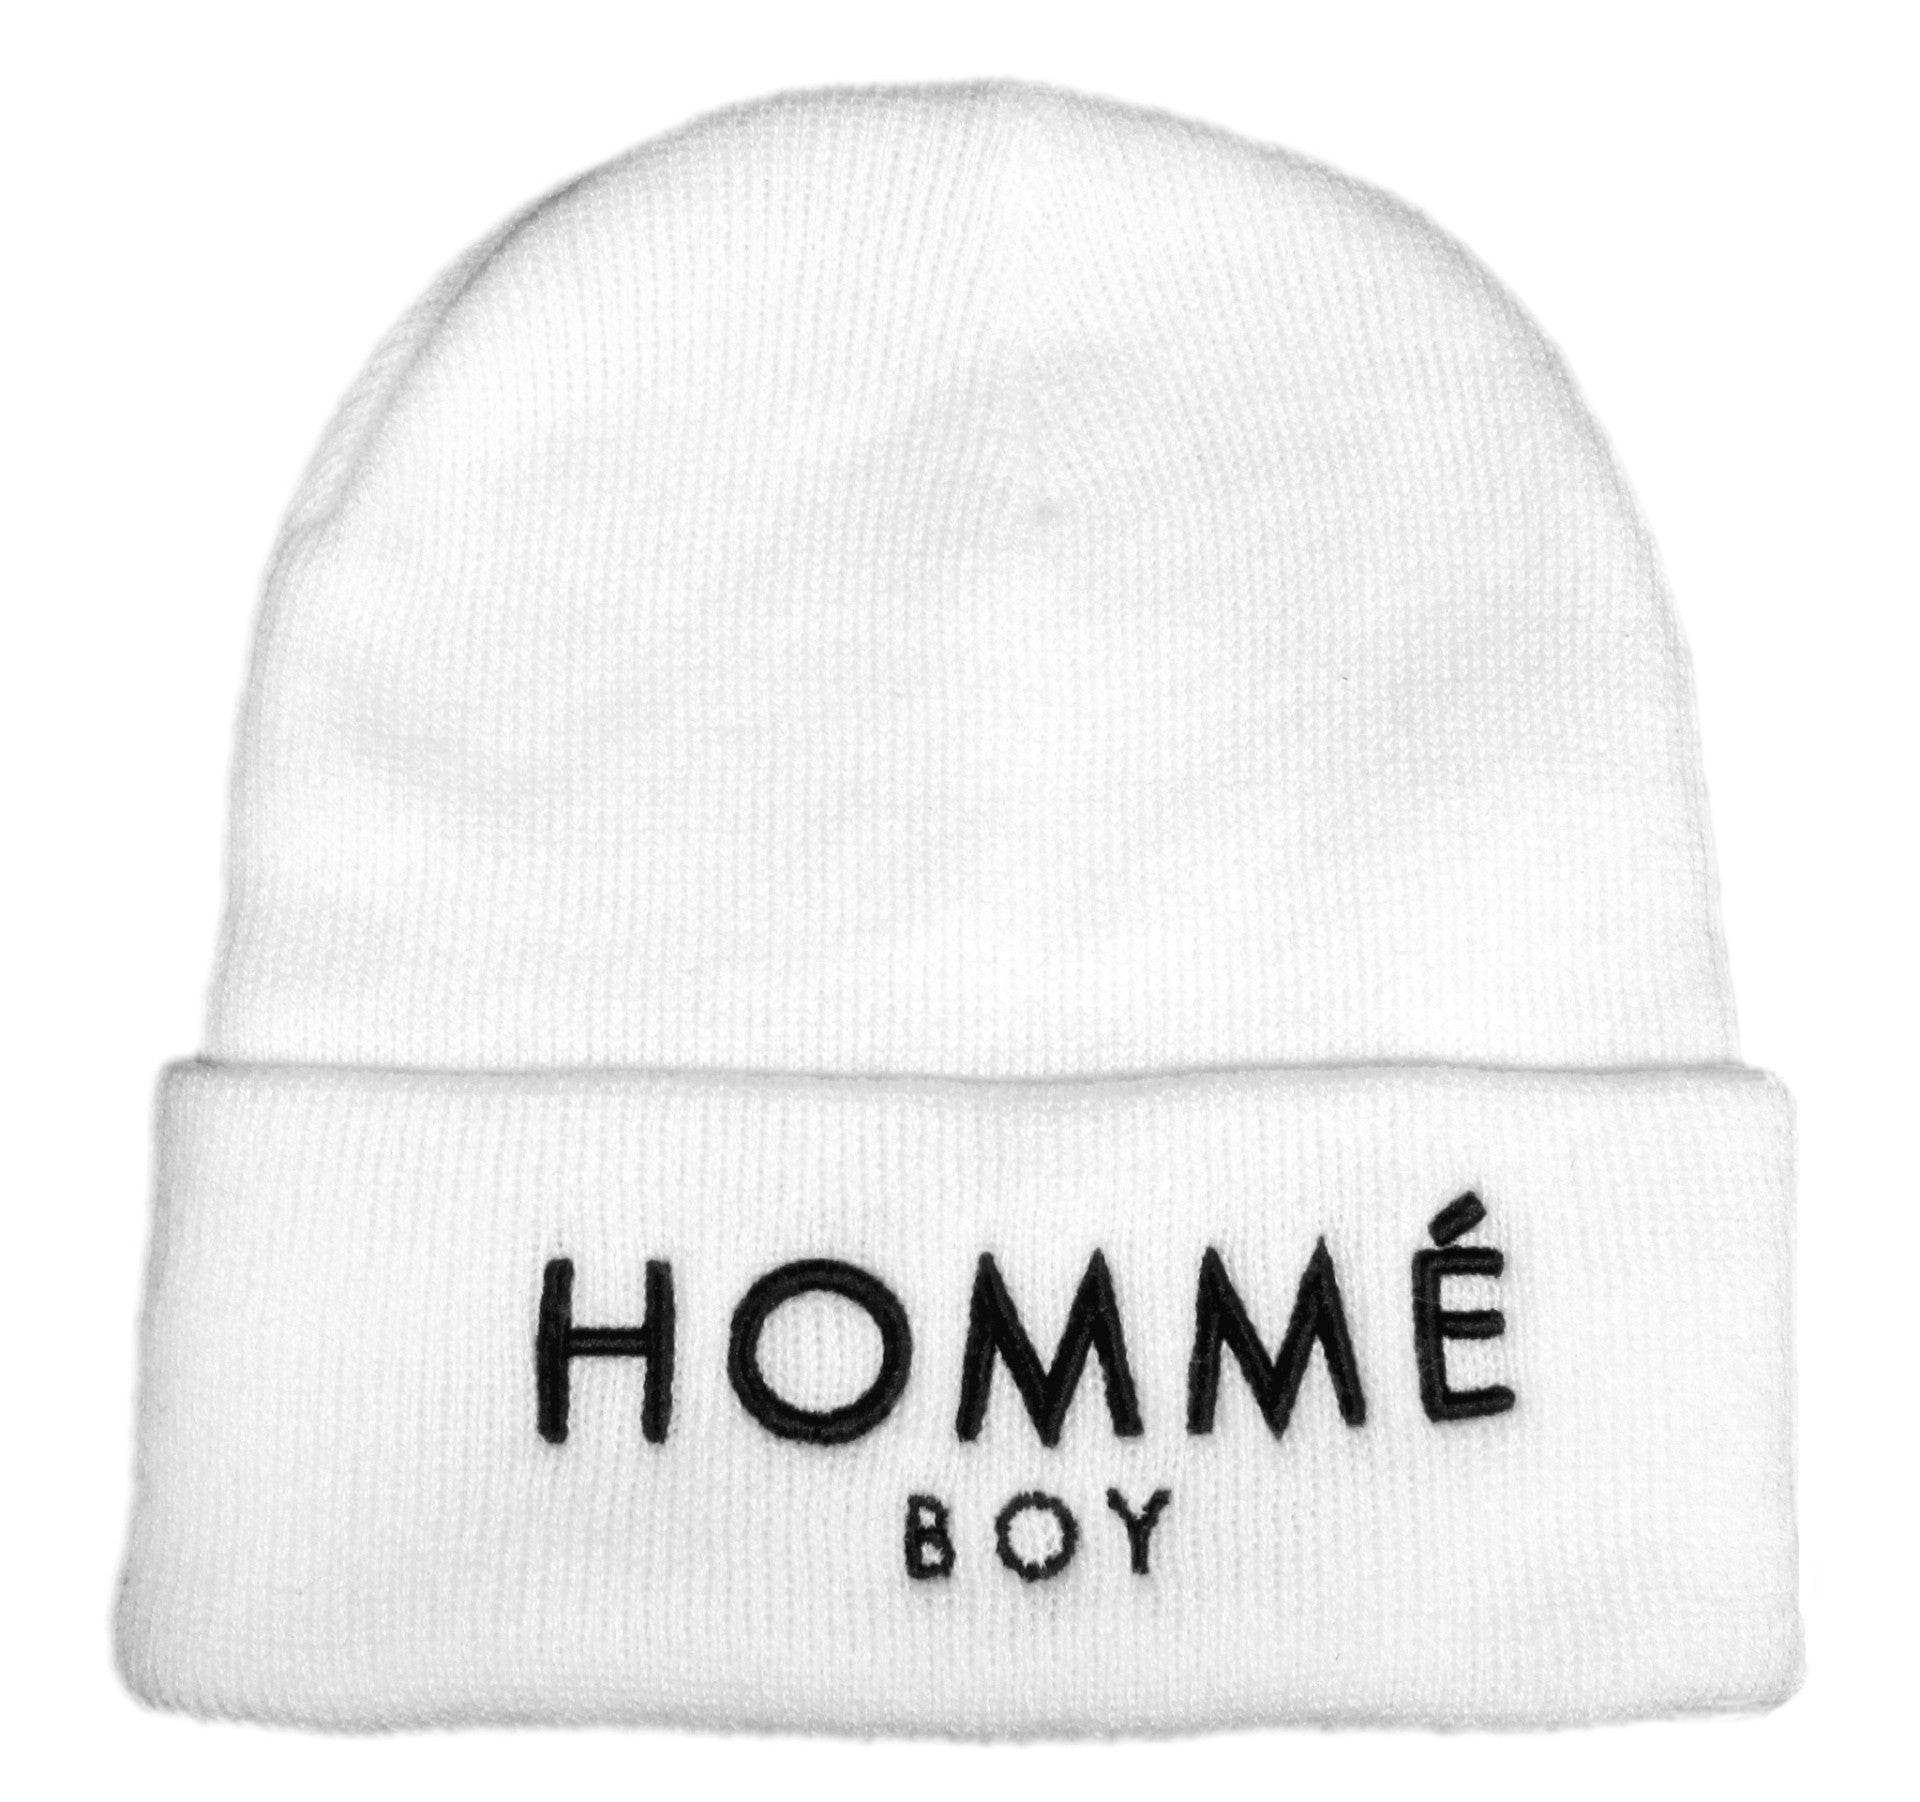 Alex & Chloe White Beanie With Homme Boy Embroidered In Black